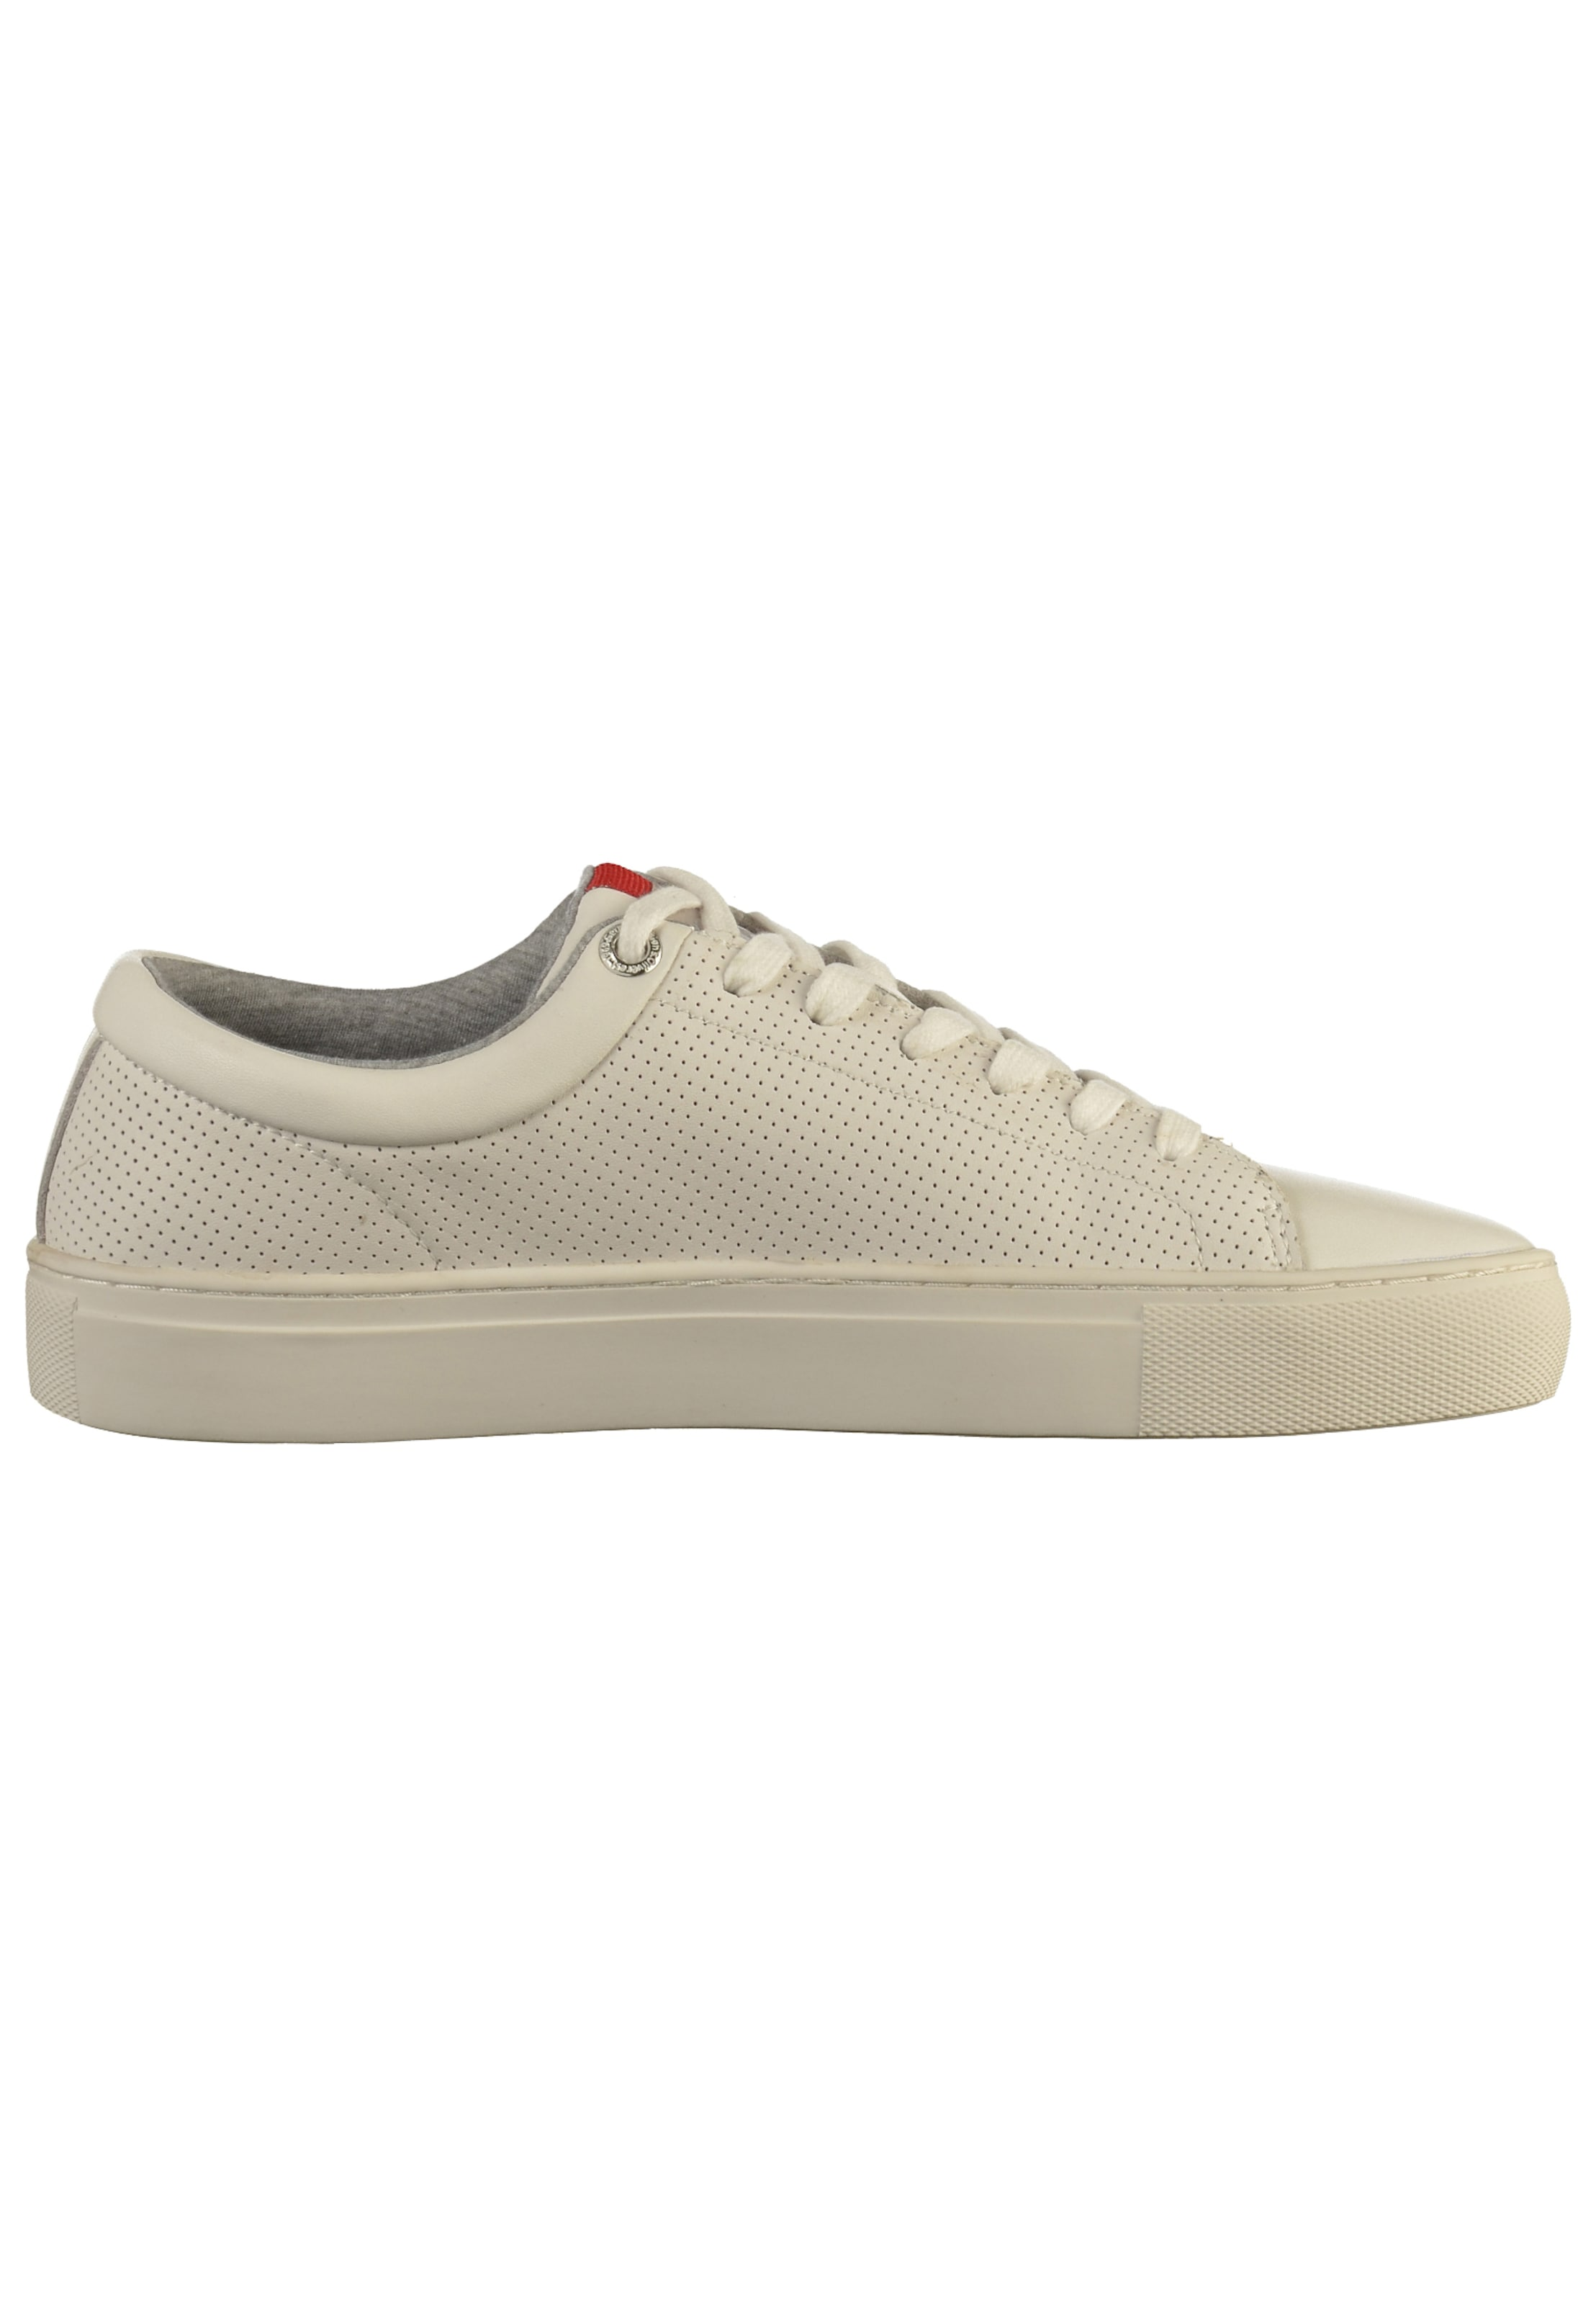 oliver In Perlweiß oliver S Sneaker S dCsQthxrB